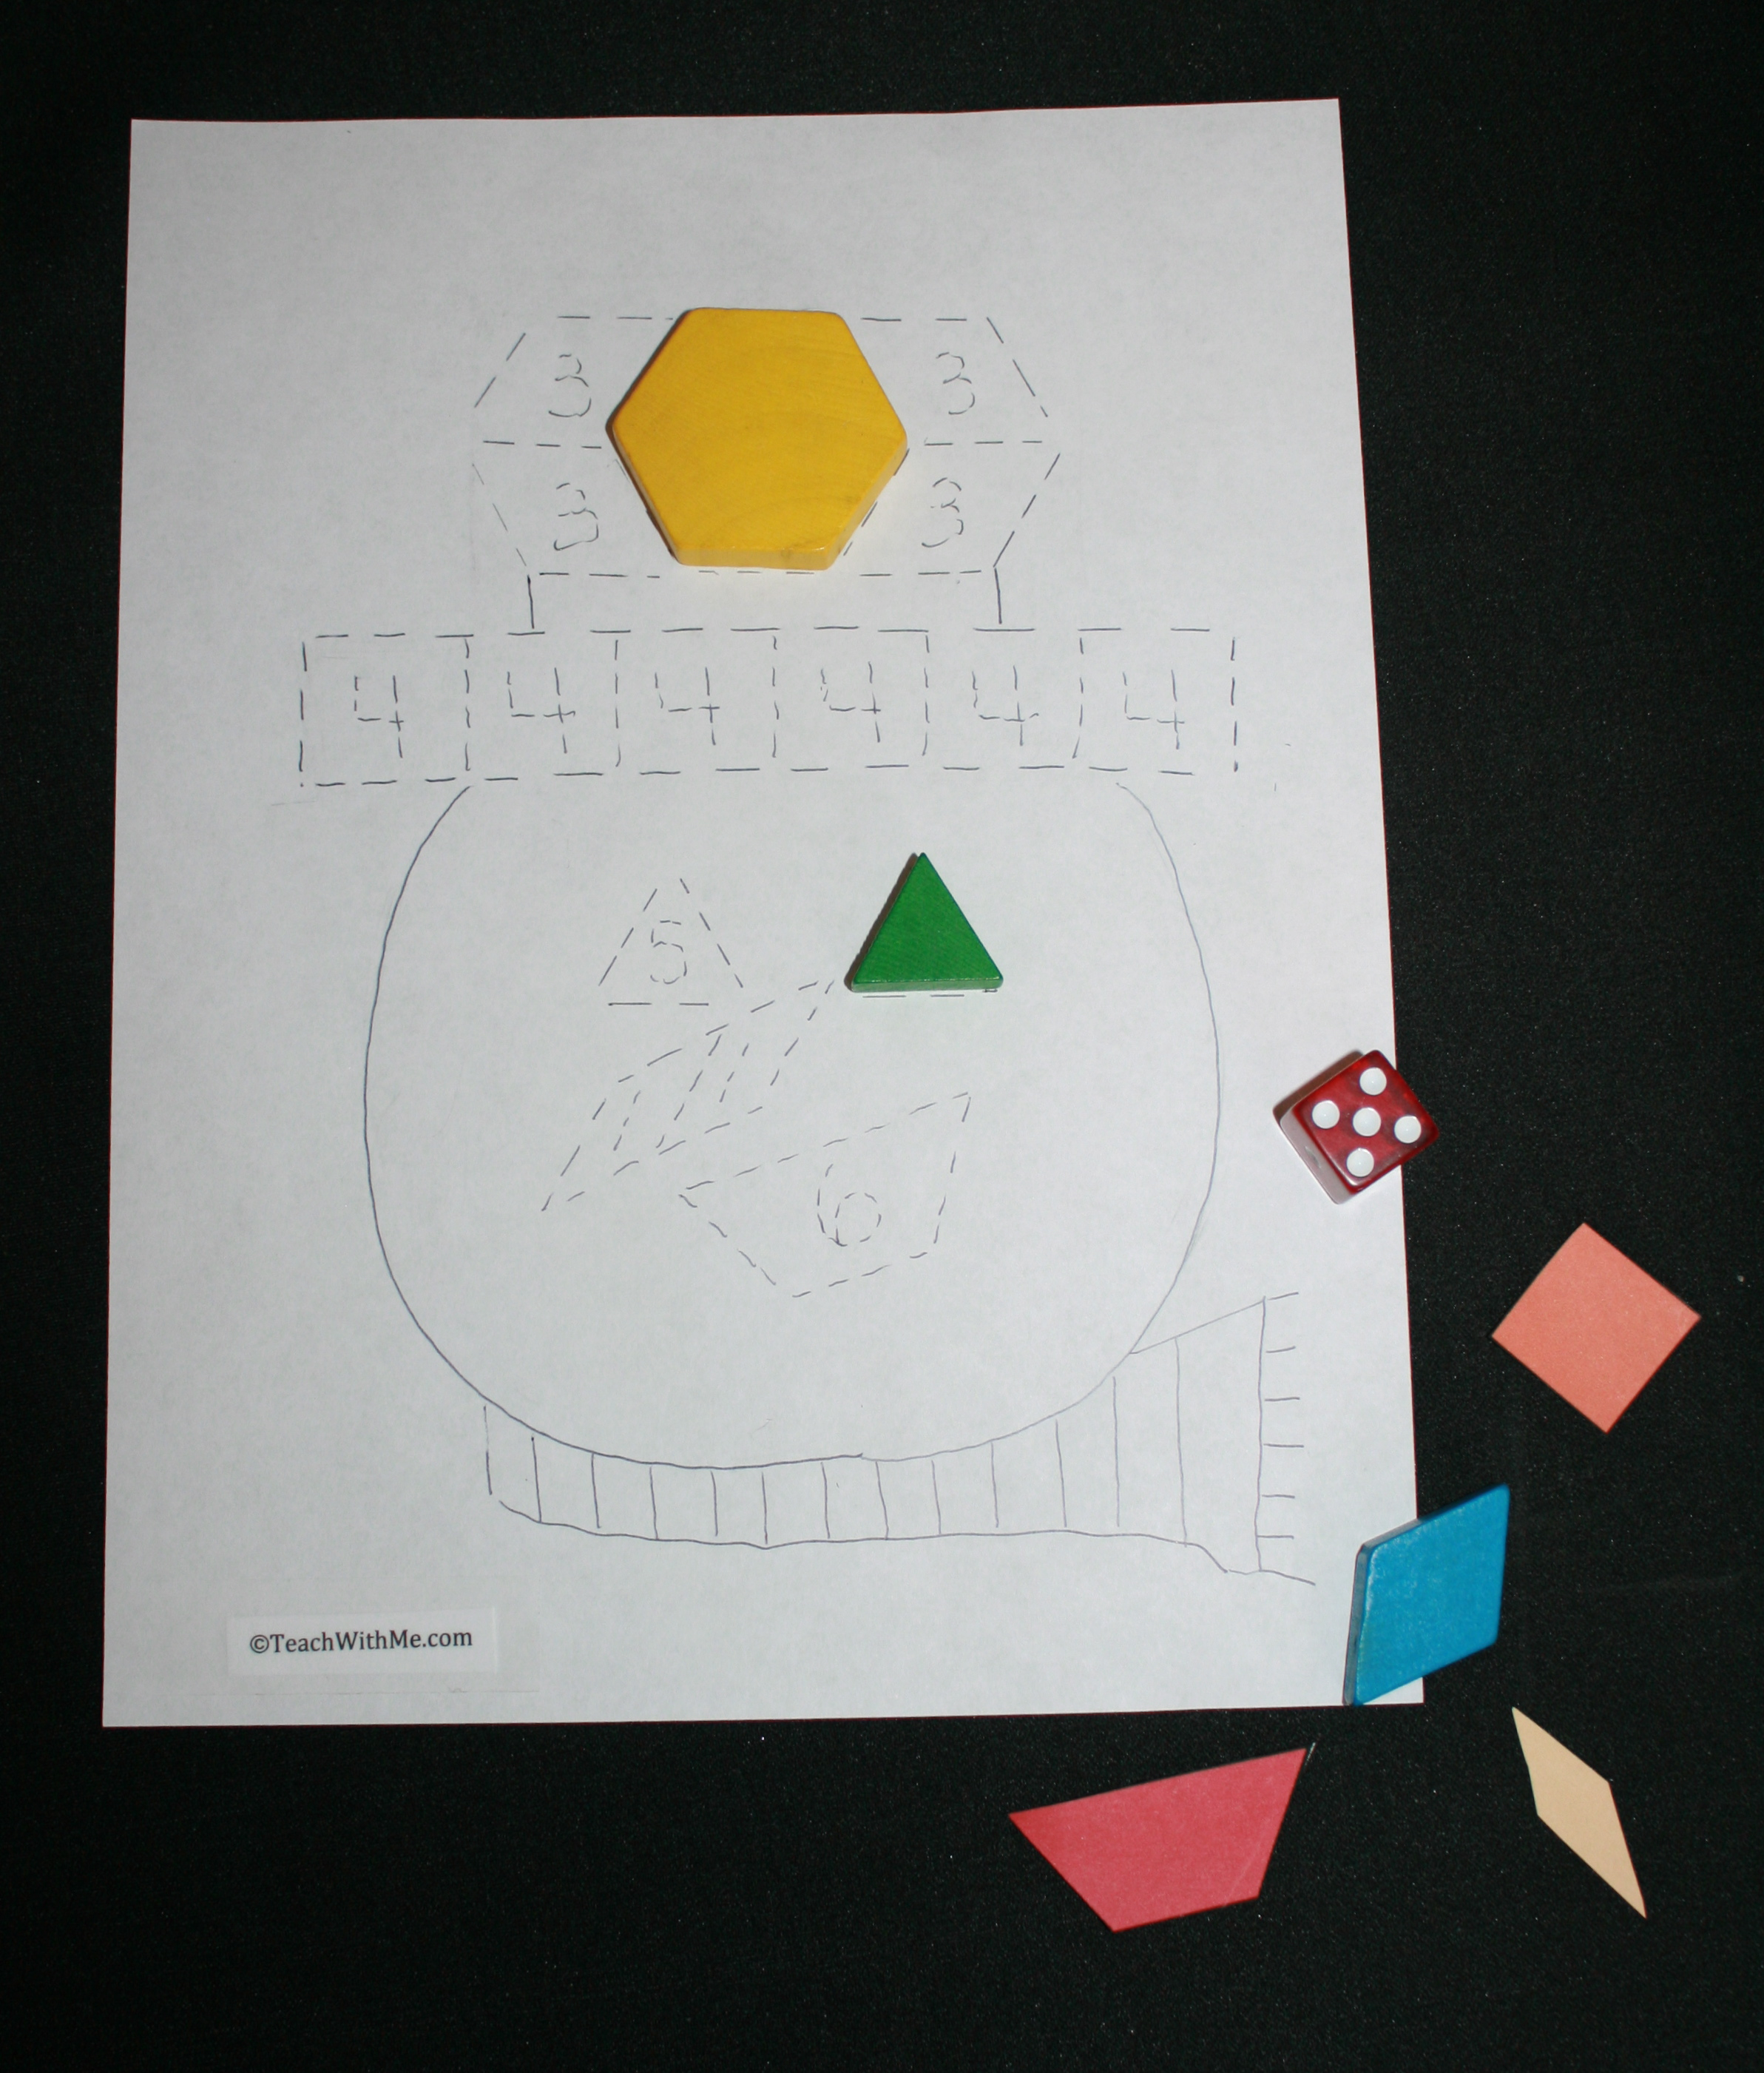 tanagrams, teaching with tanagrams, activities with tanagrams, tanagram activities, lessons with tanagrams, tanagram templates, tanagram worksheets, tanagram ideas, tanagram centers, math centers with tanagrams, tanagram games, centers using tanagrams, math manipulative activities, math centers, tanagram puzzles, tanagram templates, math puzzles, games for early elementary, math games,